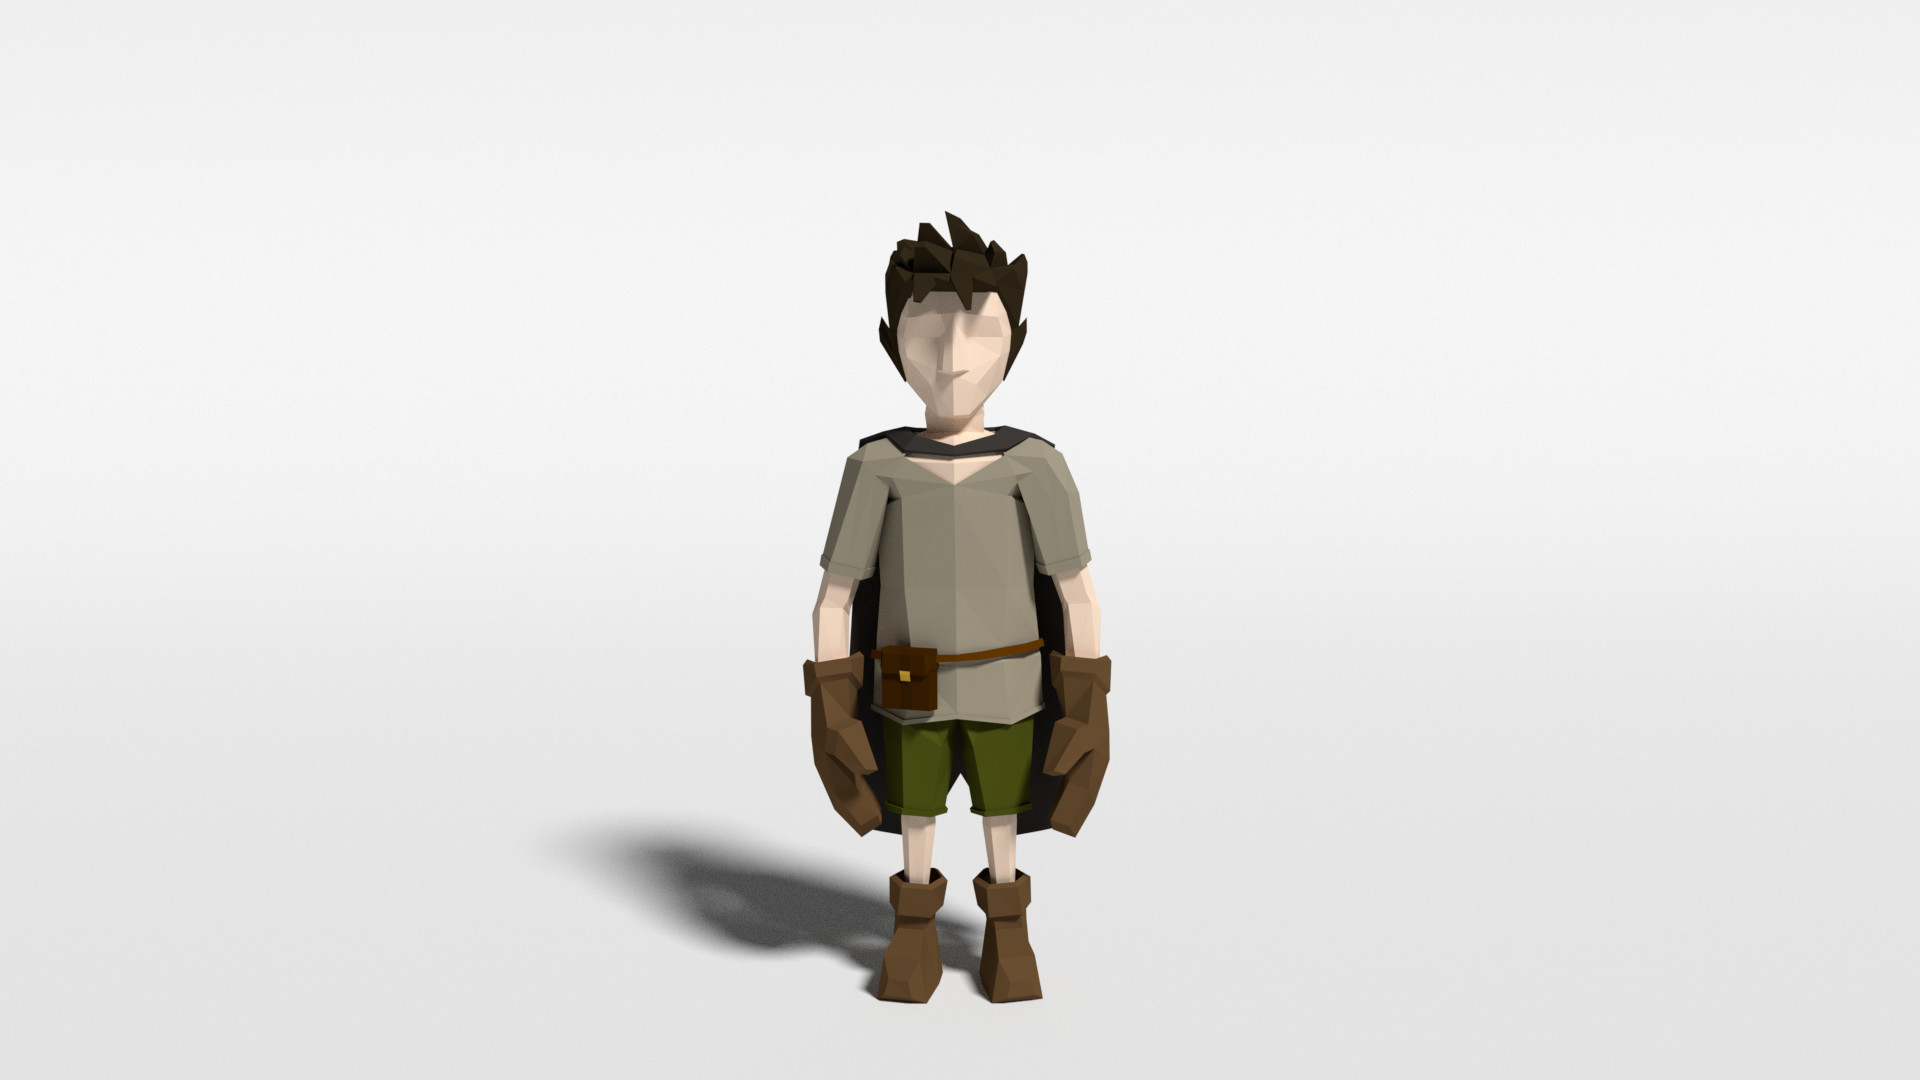 Low poly stylized character concept for Sórtia